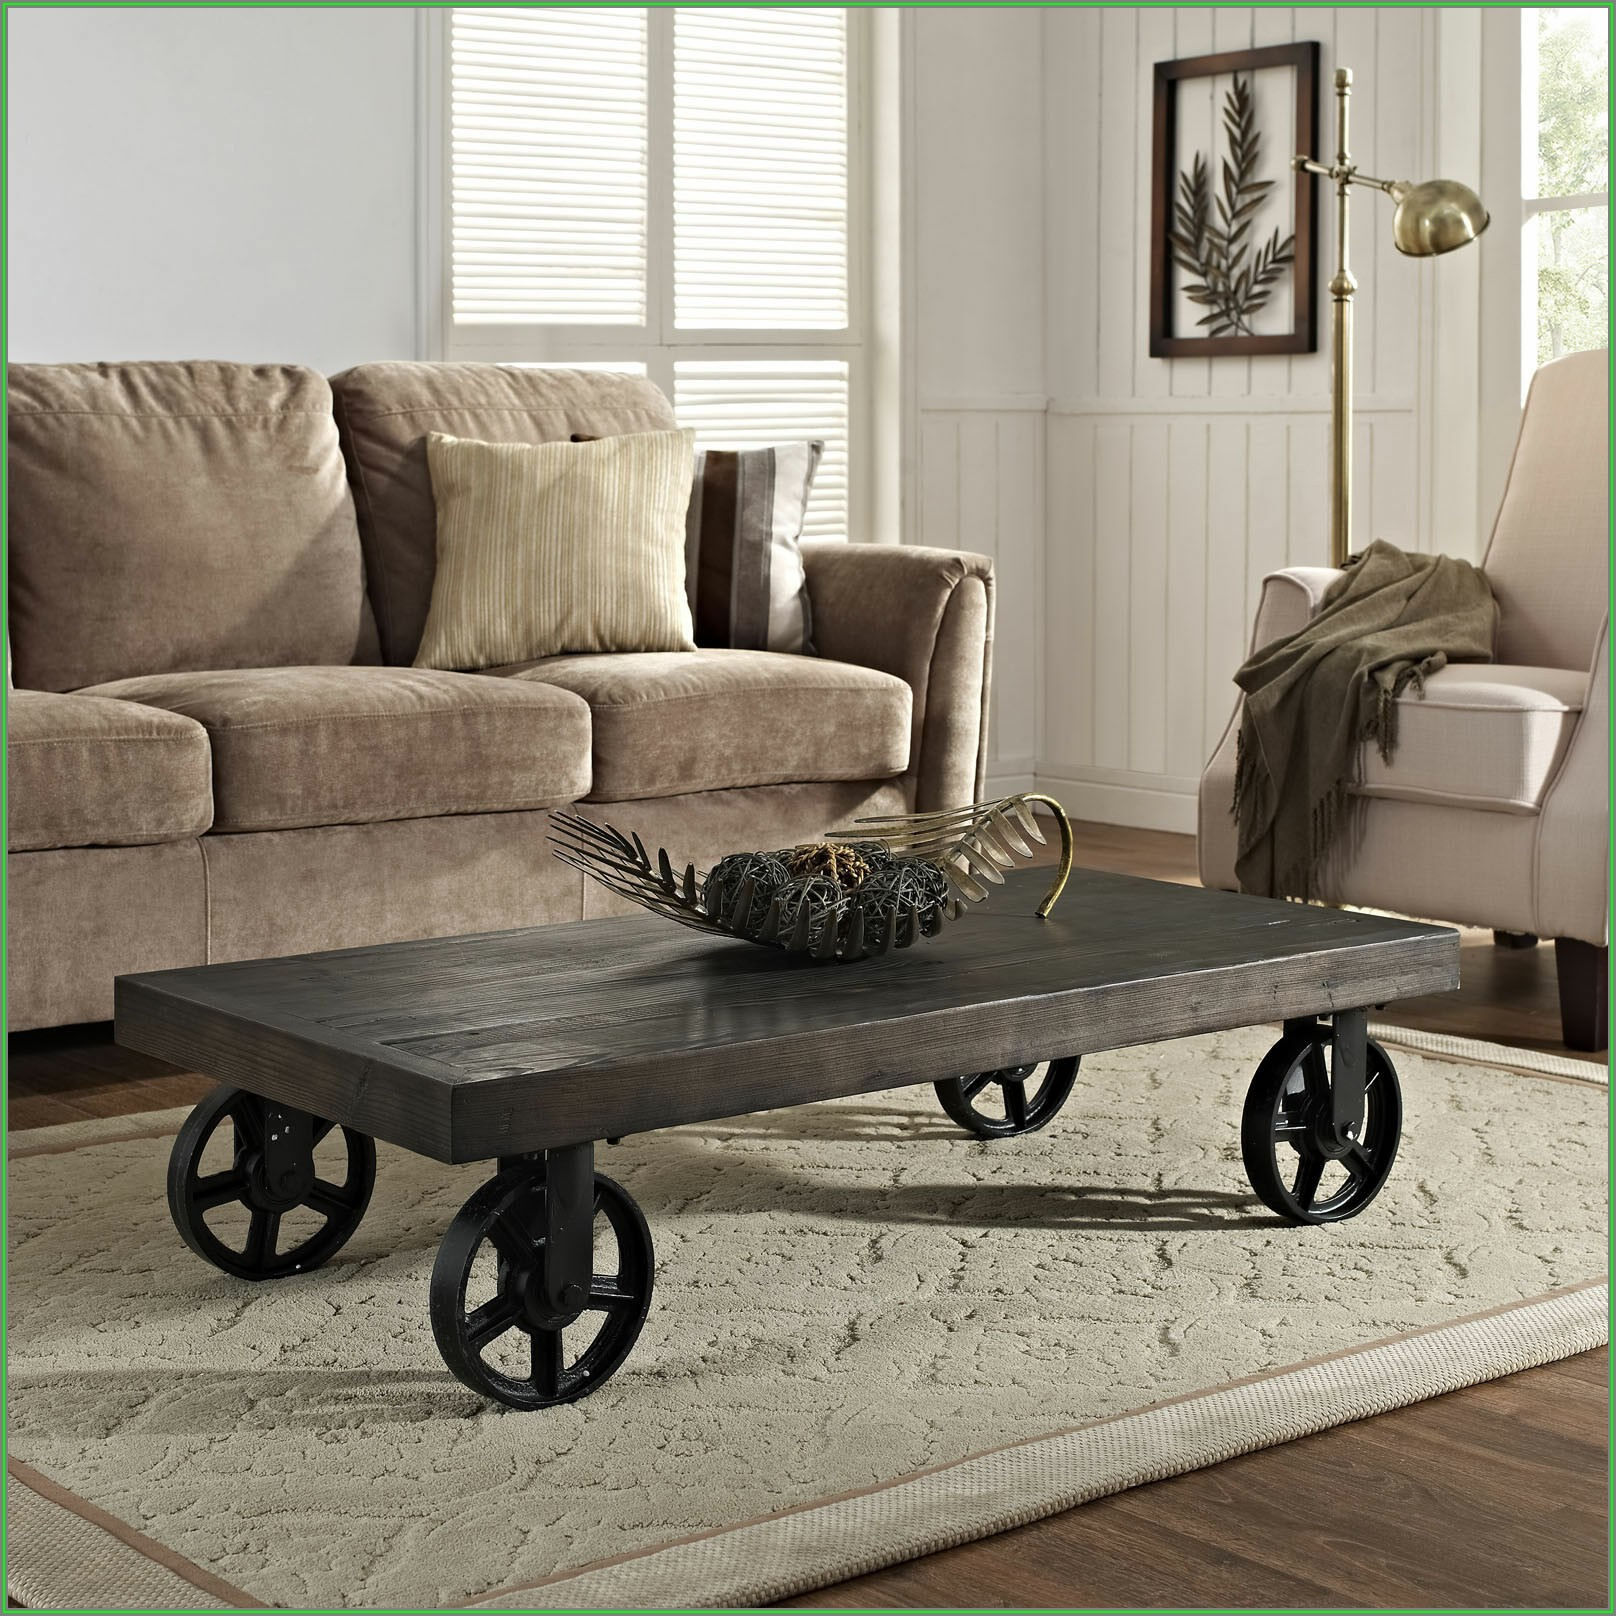 Rustic Coffee Table With Metal Wheels